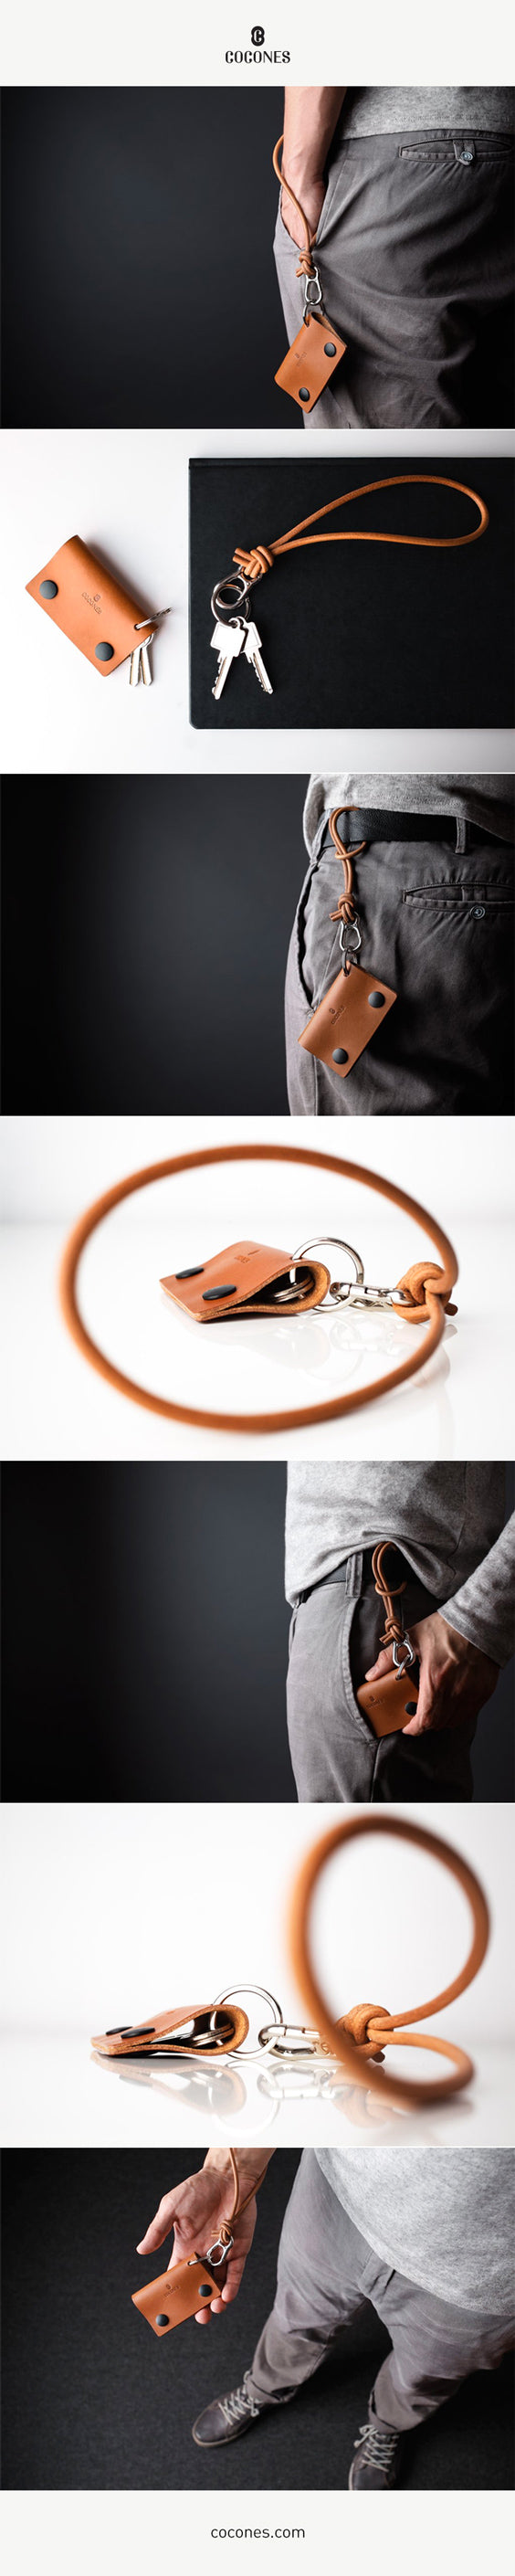 Cocones Key Two - Key holder and keychain